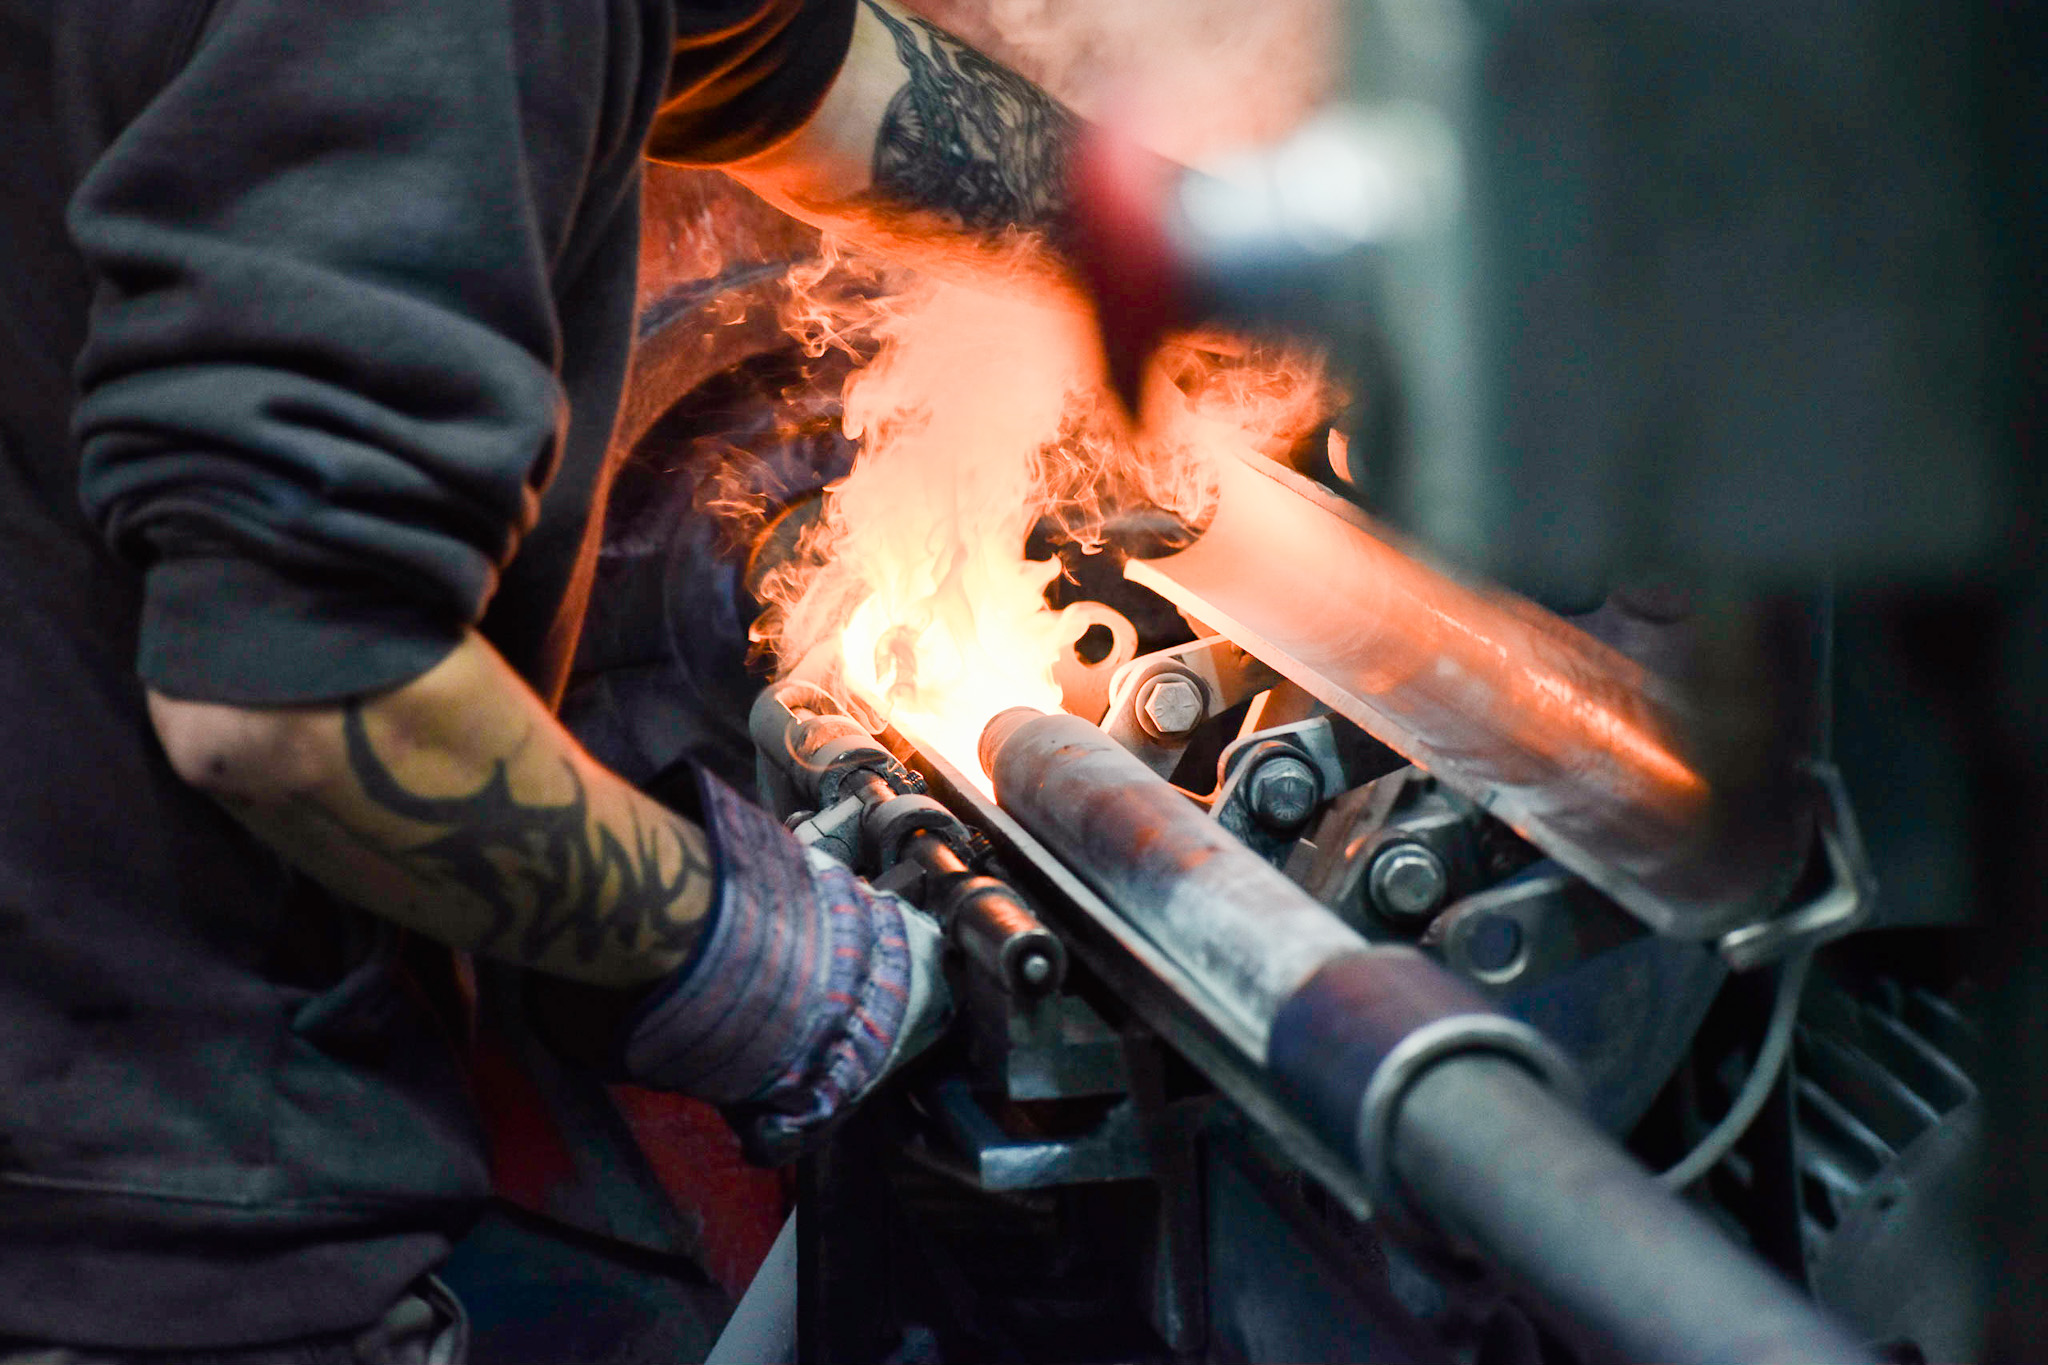 A photo of a metal worker from Elmet Technologies